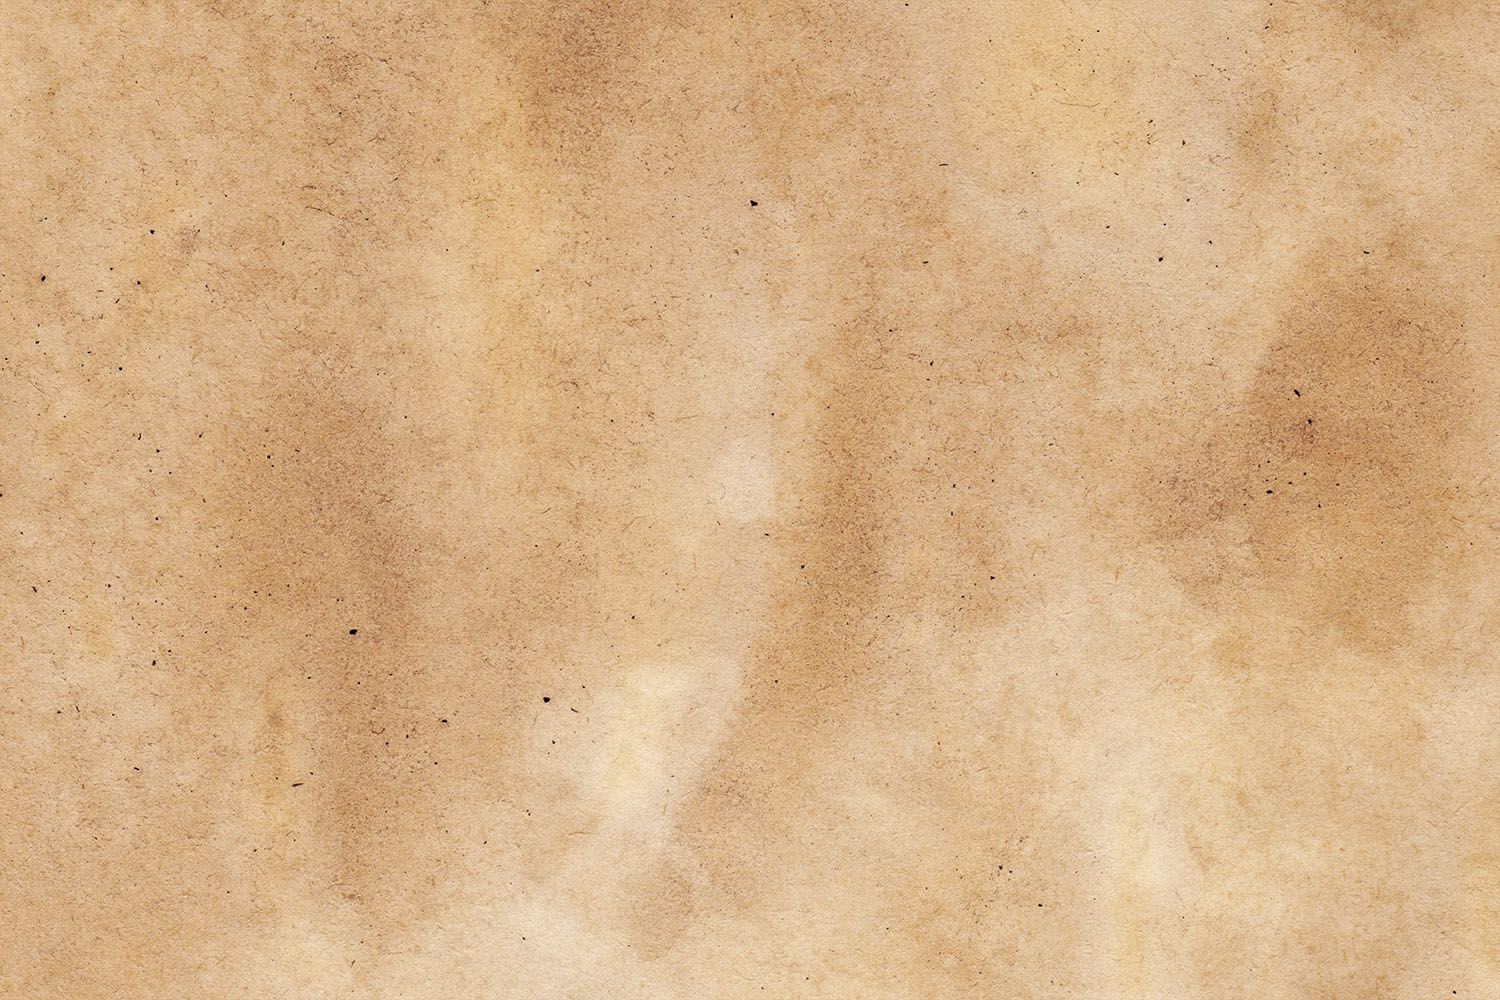 Handcrafted Vintage Paper Textures Vol. 06 example image 3